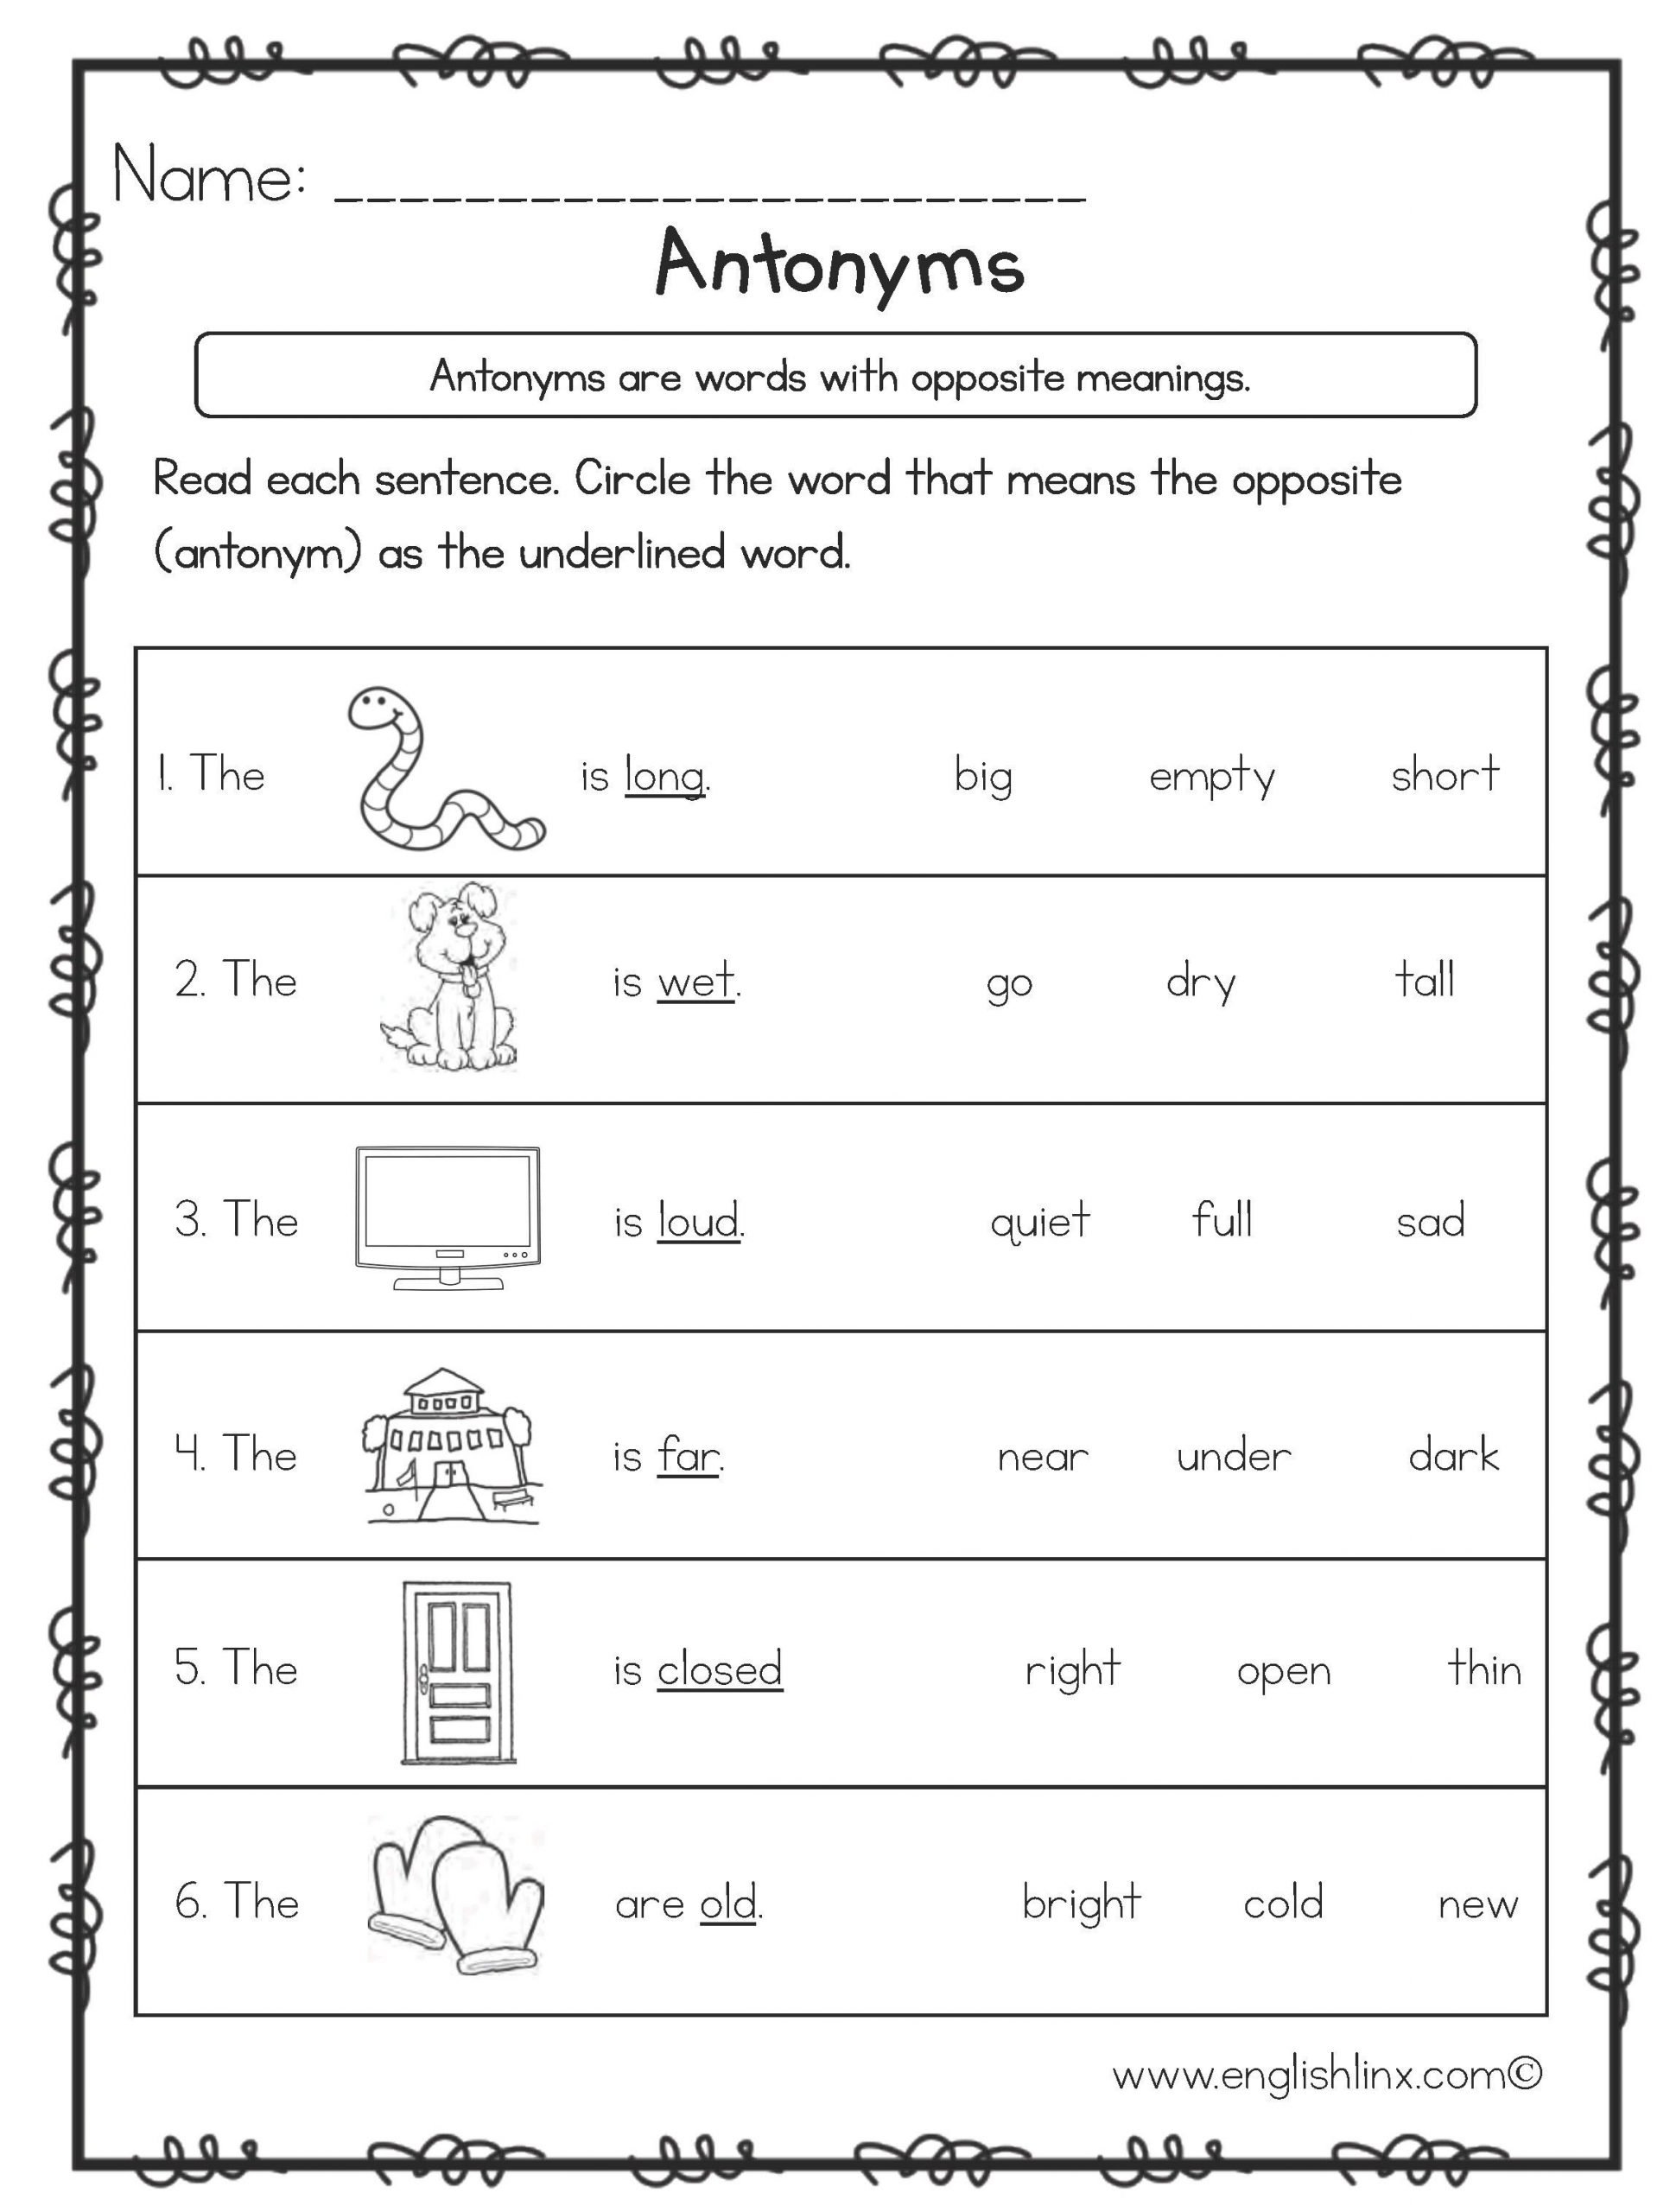 Synonyms Worksheet First Grade Free First Grade English Worksheets 1st Grade